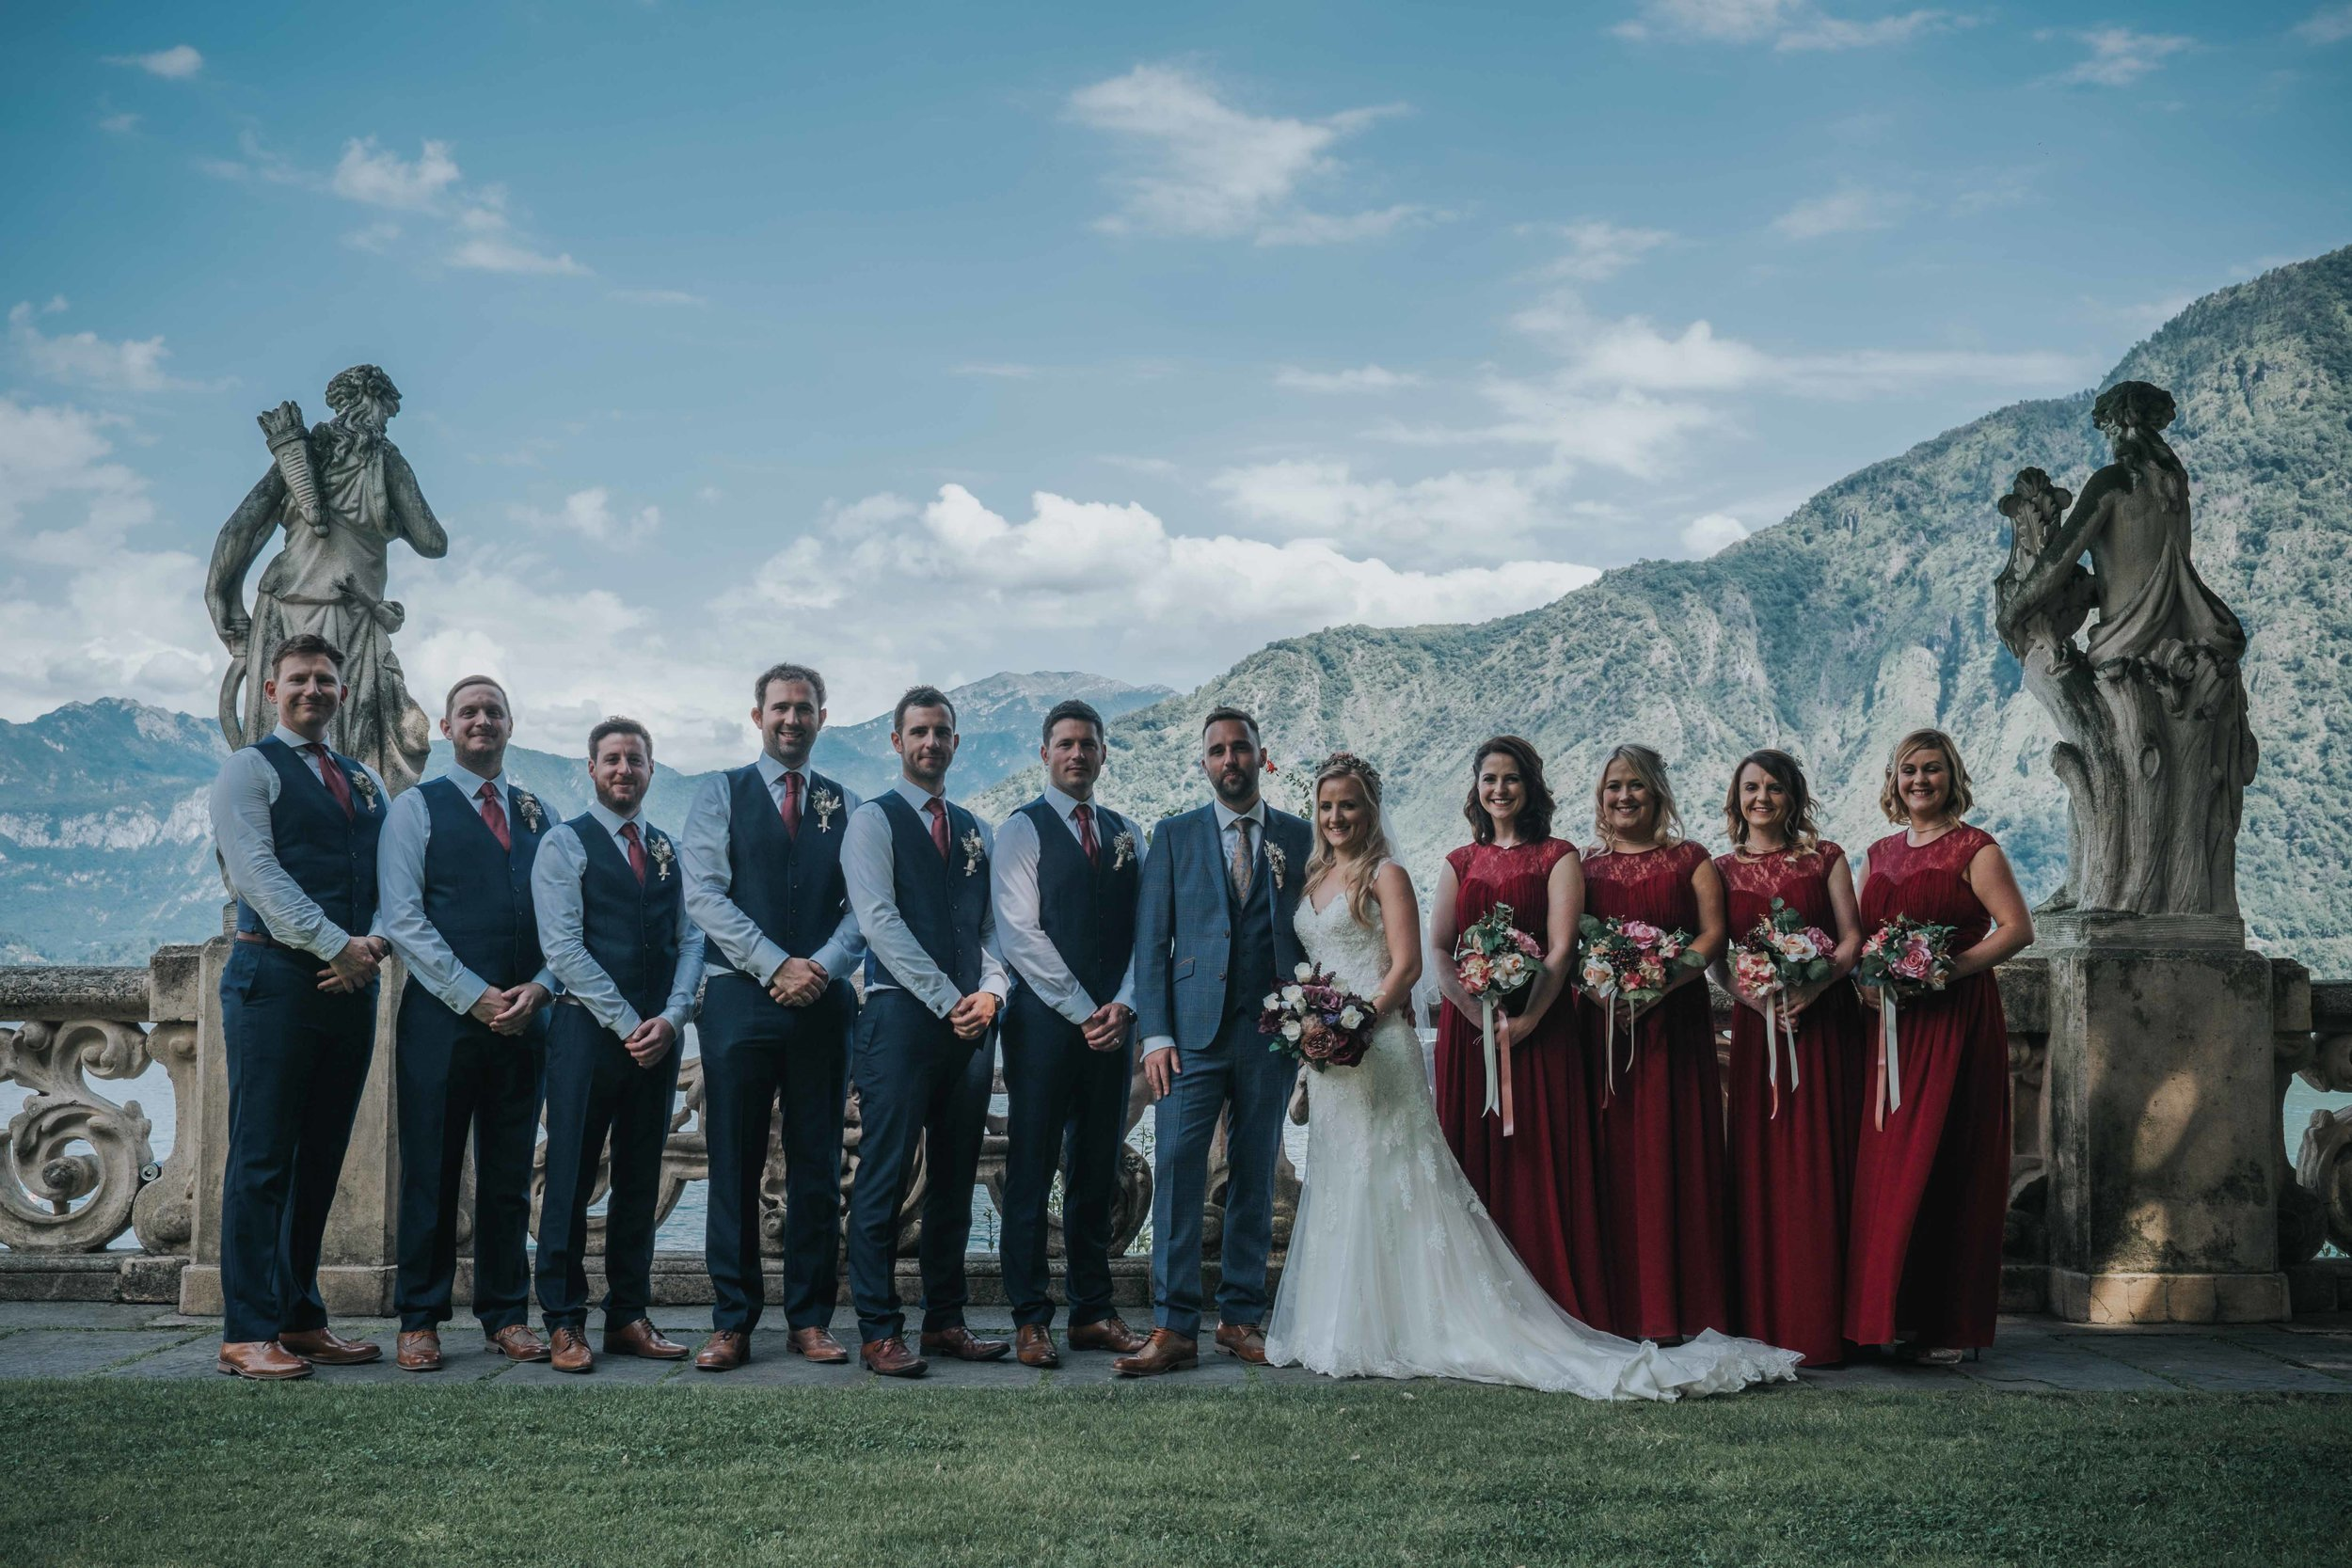 Laco Como Italy destination wedding photographer cheshire north west england documentry photography (61 of 117).jpg